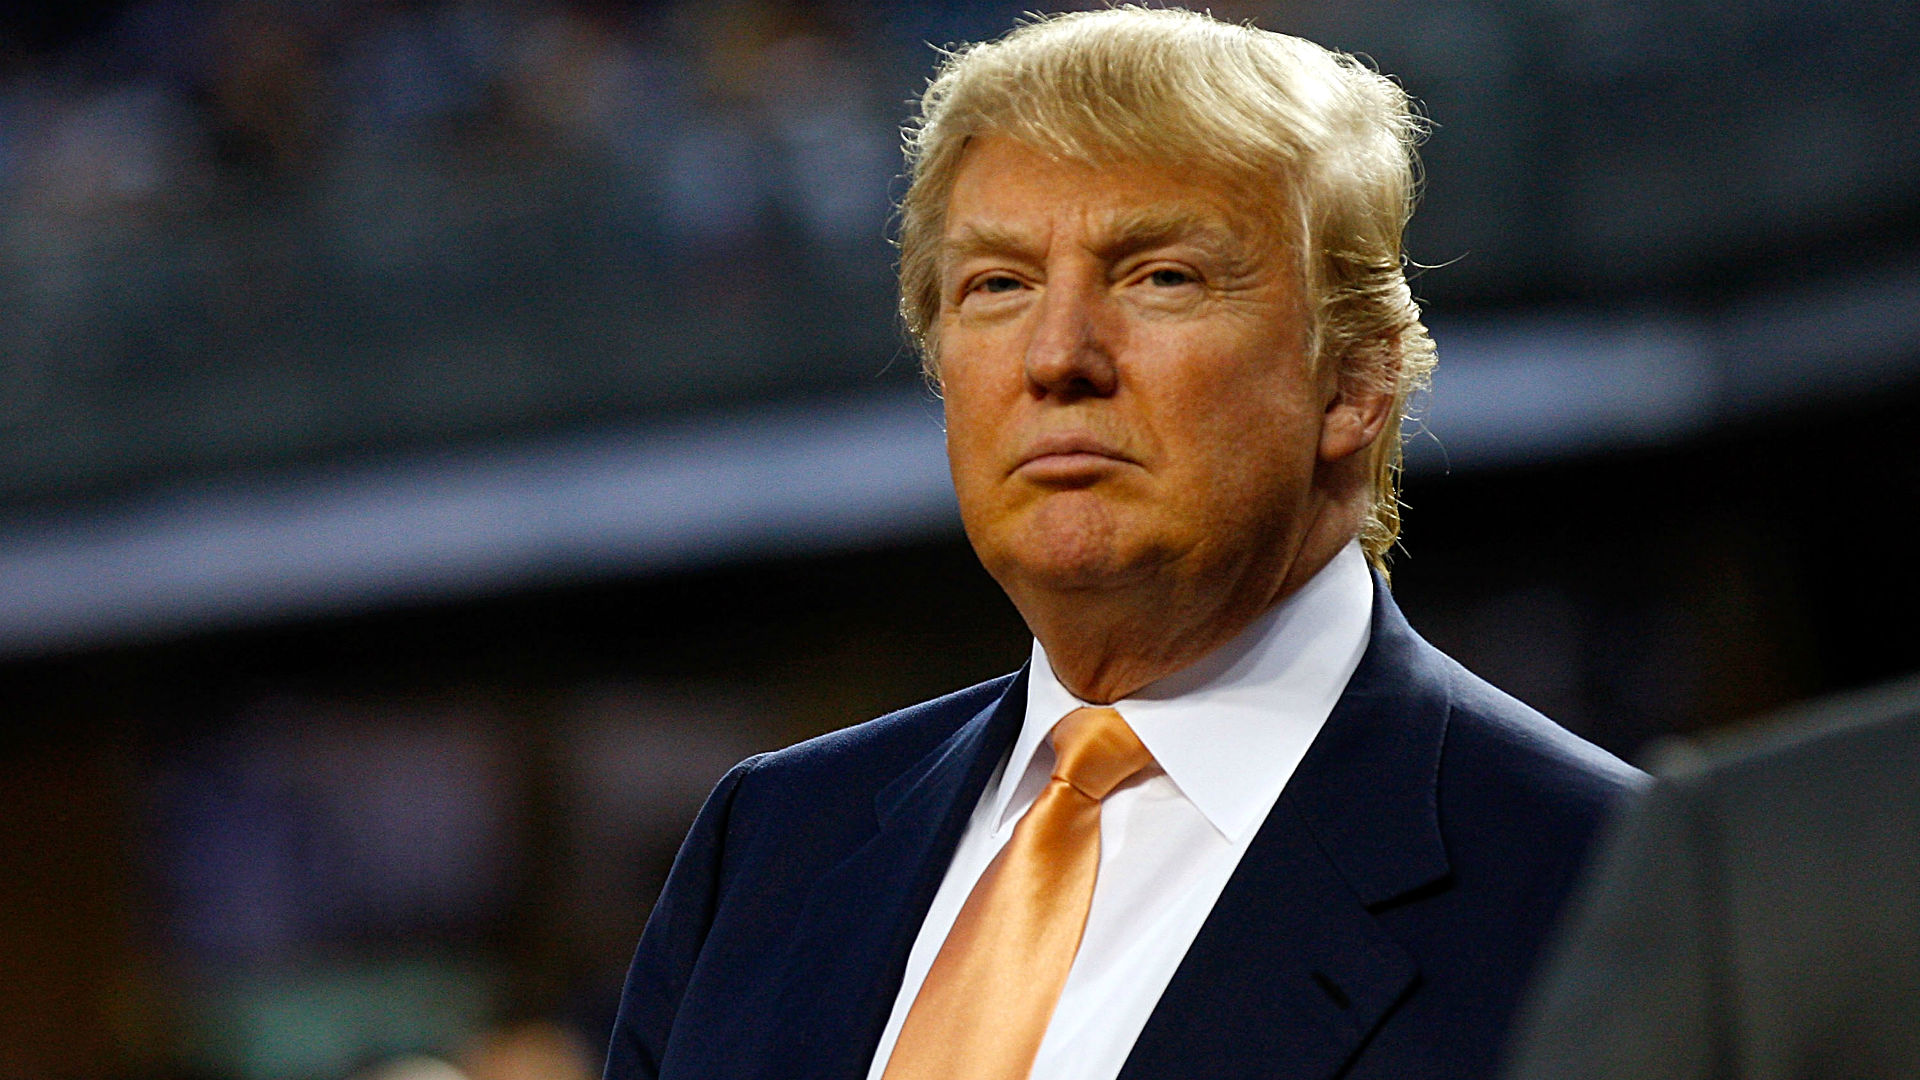 Donald Trump says no first pitch at Yankees game on Aug. 15; maybe 'later in season' 1